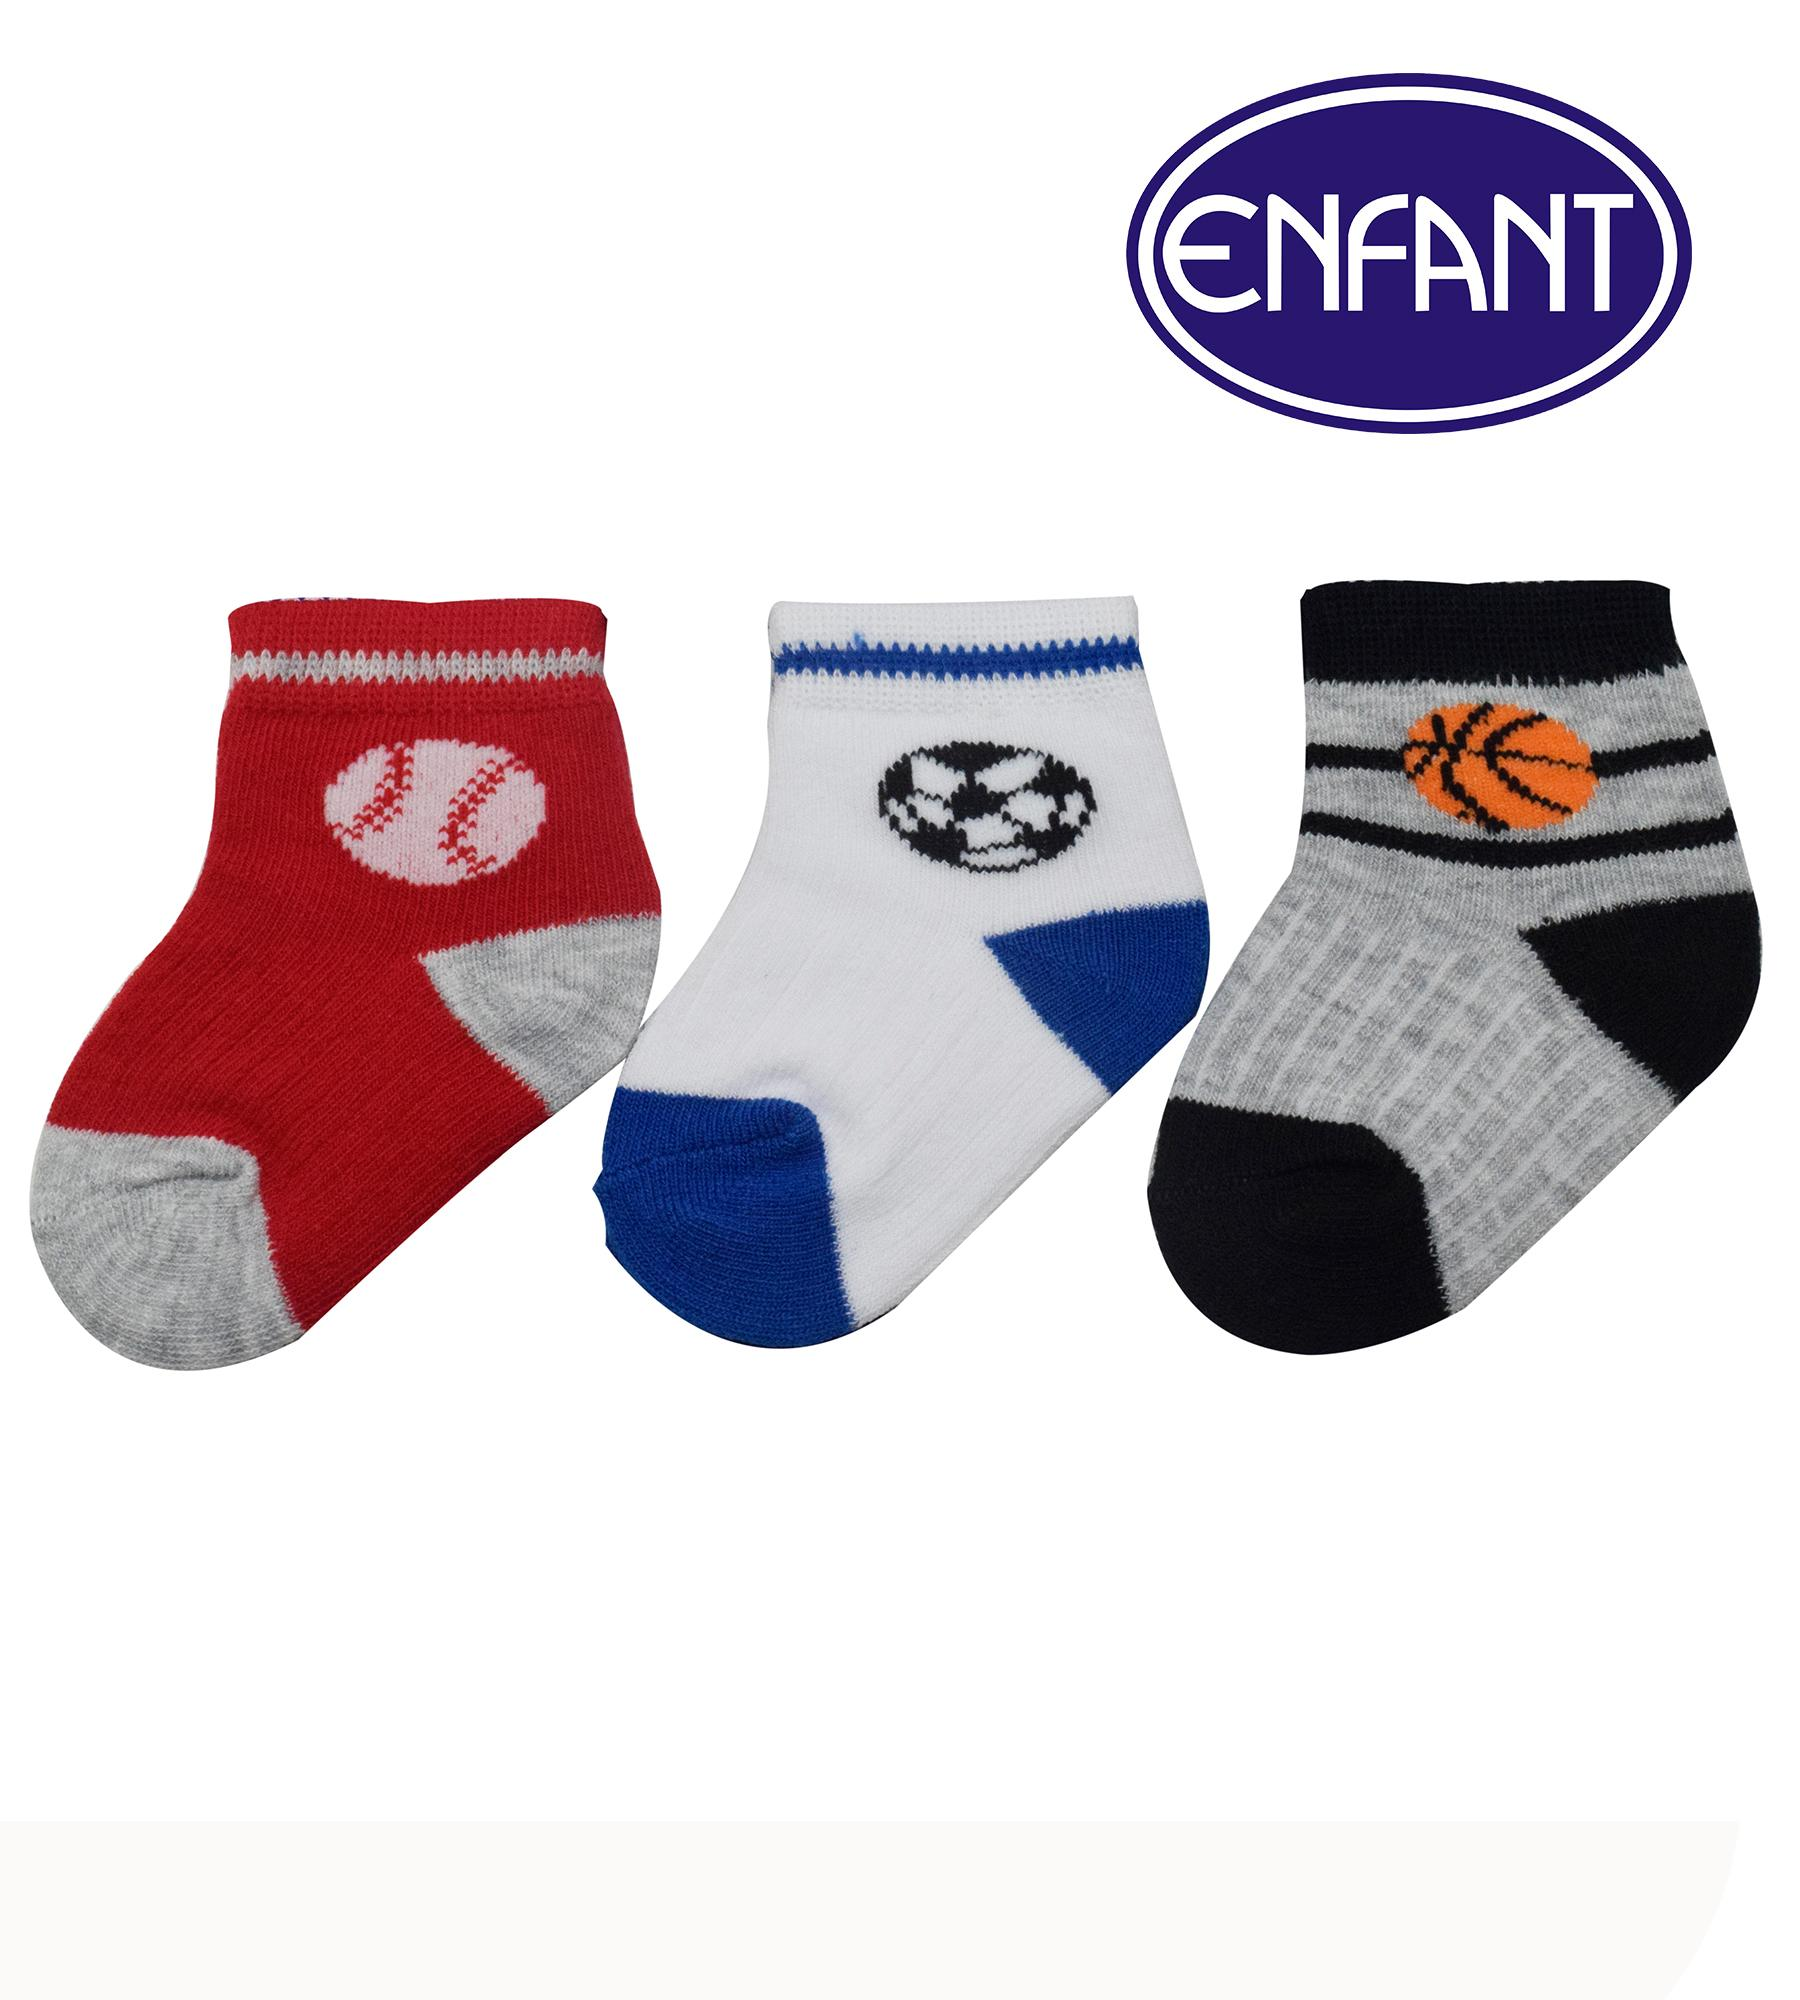 Boys Socks For Sale Baby Boys Socks Online Brands Prices